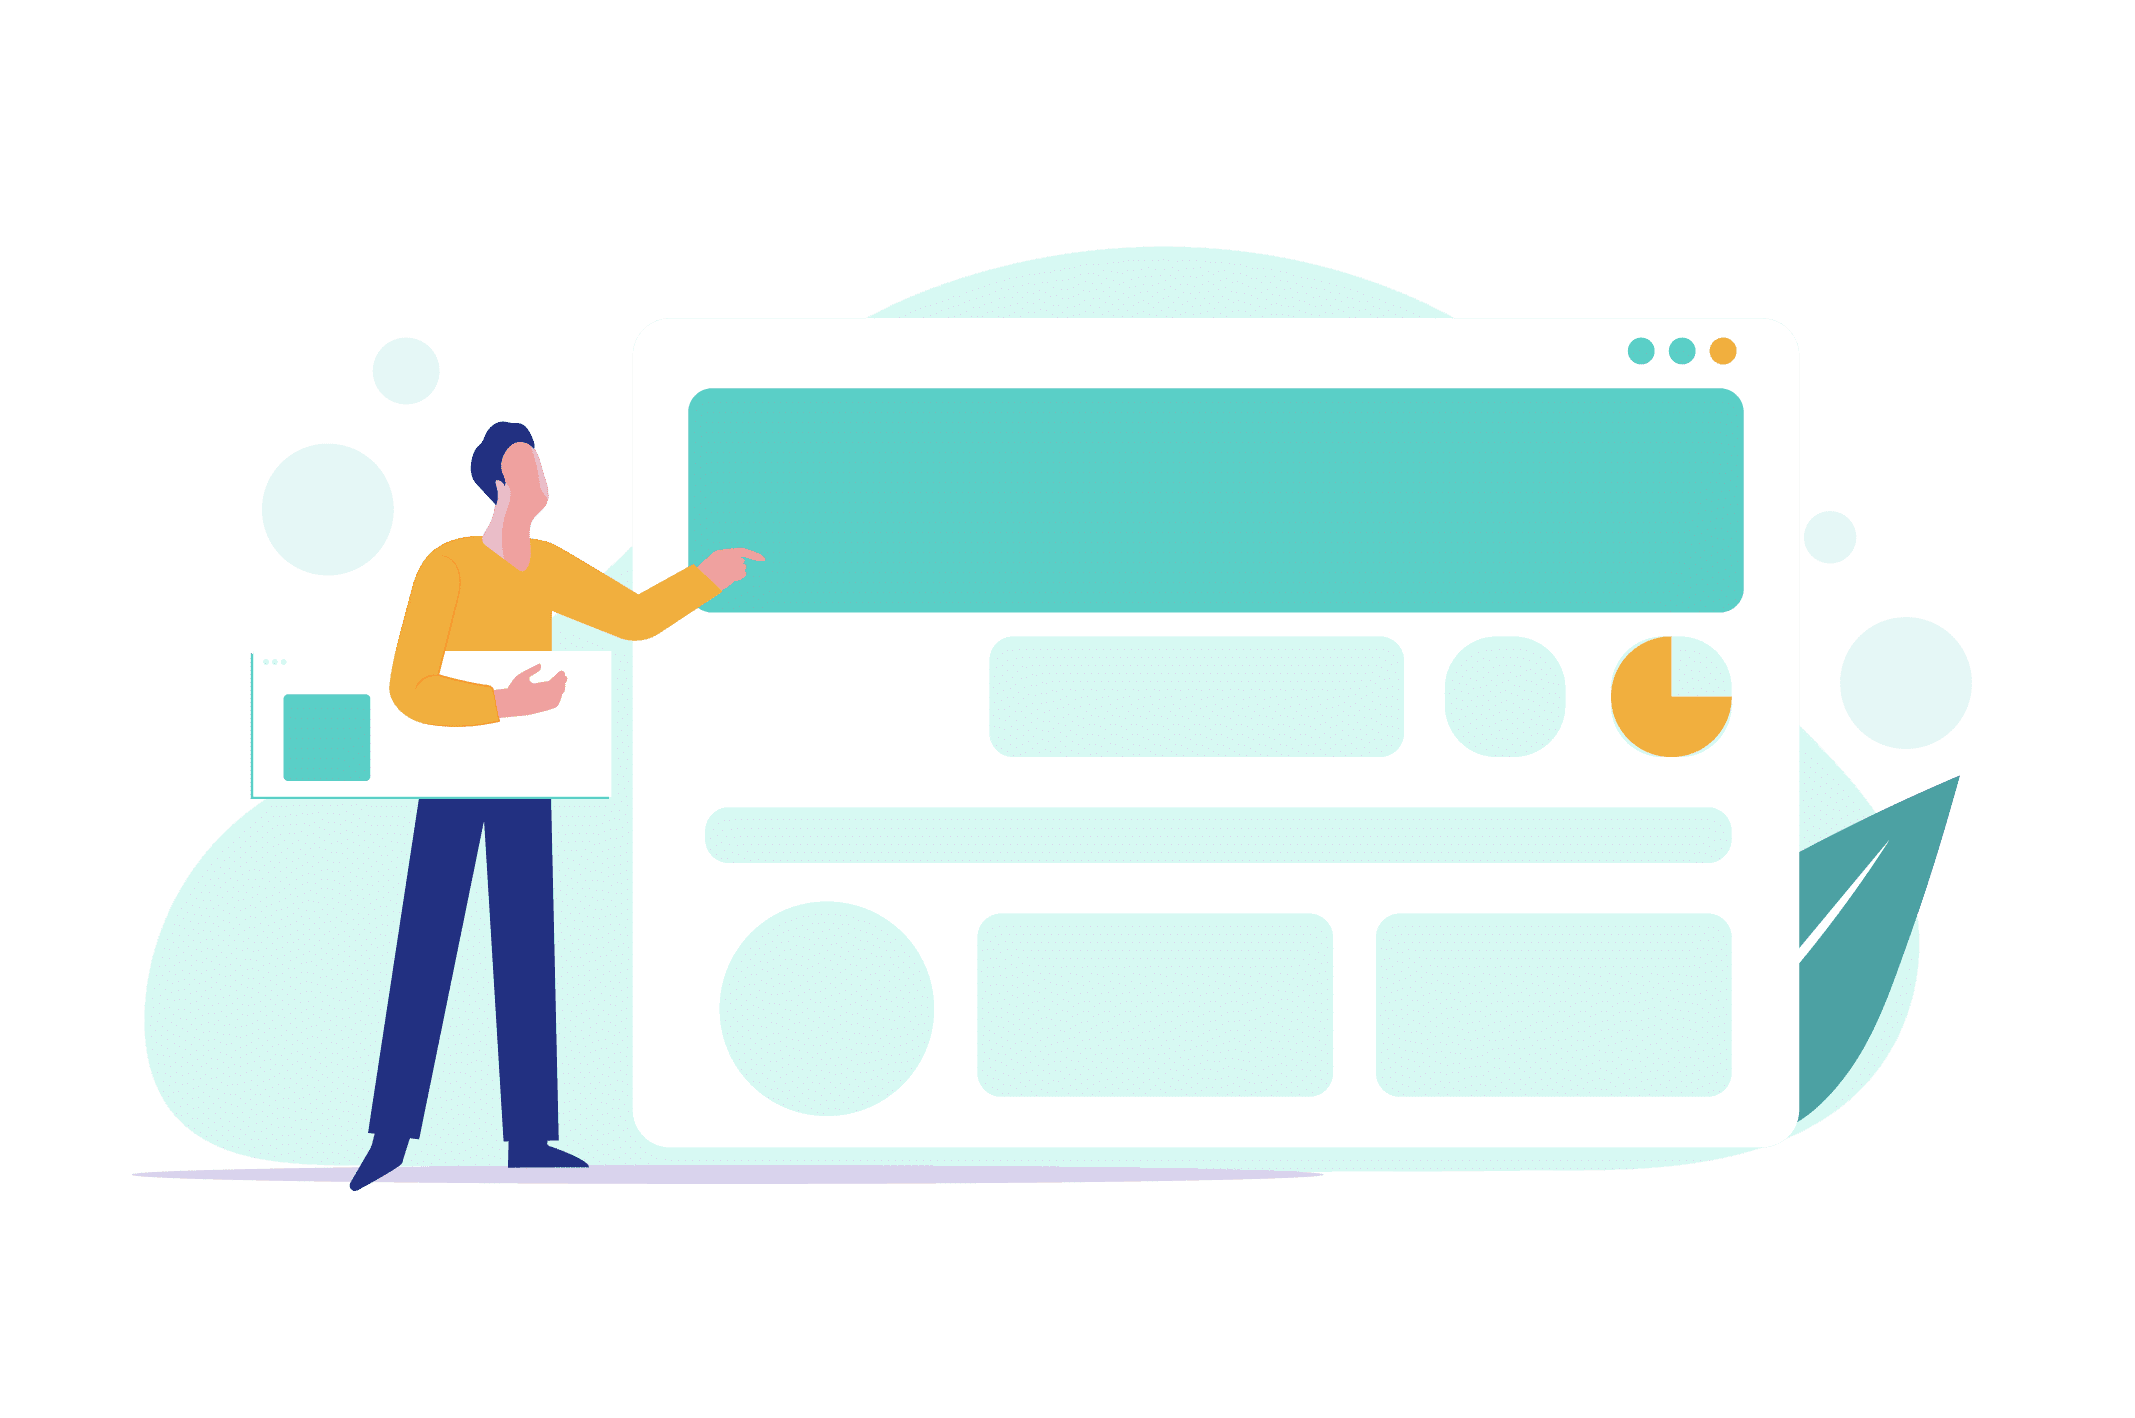 dashboard design principles should help deliver a superior UX presented by the best designers of the leading UX Design Firm, WANDR